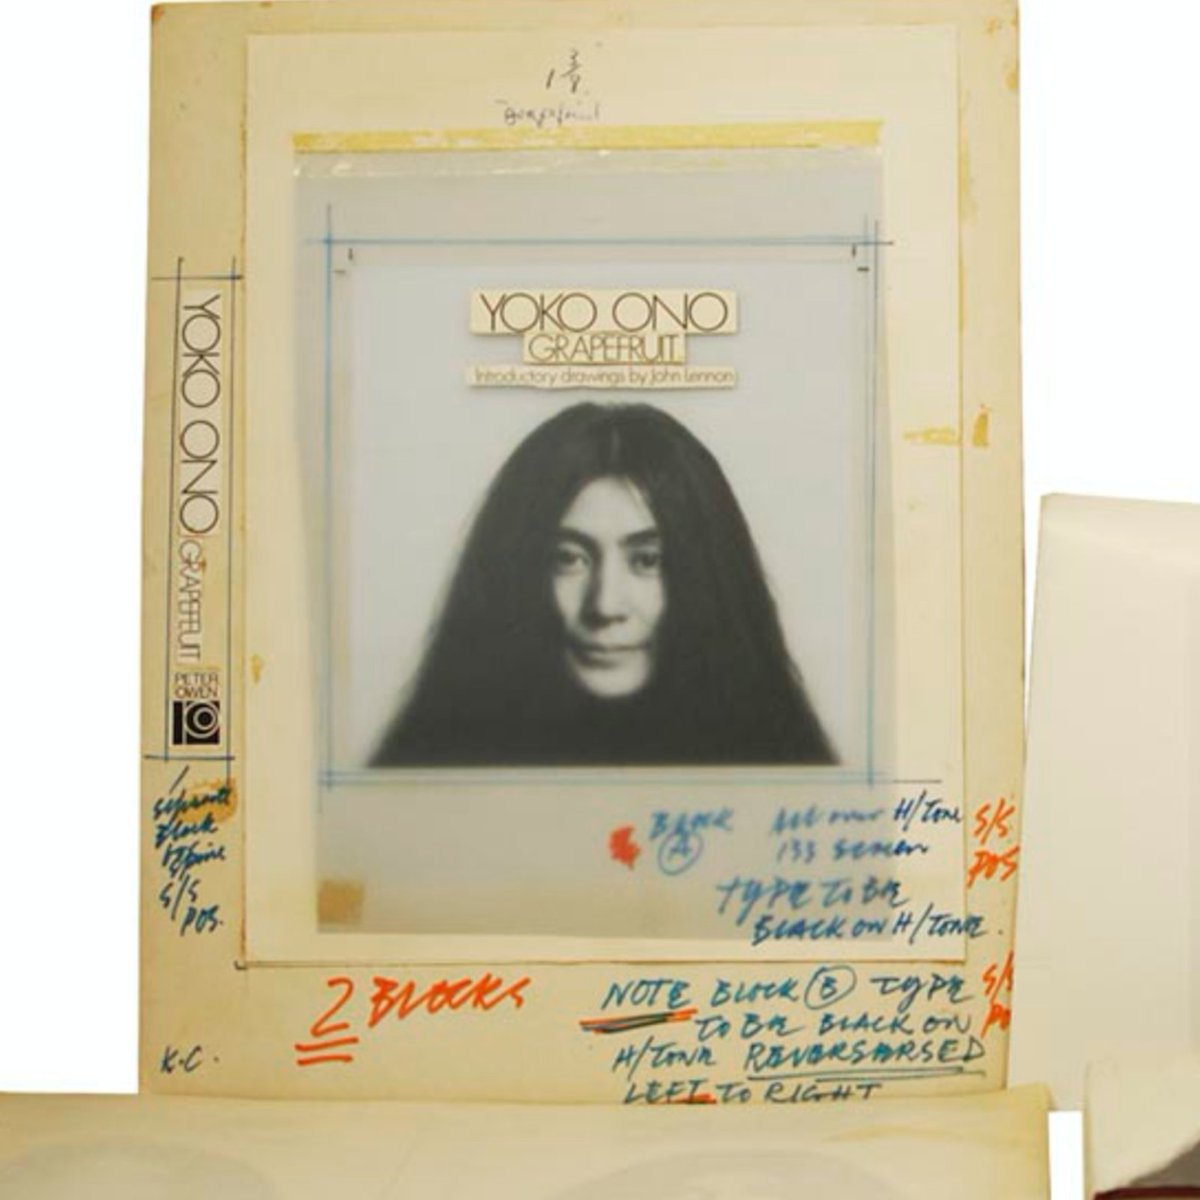 We're one day away from our online discussion 'Music, Painting, Event, Poetry, Object, Film and Dance: A Panel Discussion on @yokoono's 'Grapefruit' (1964)'  with Dave Dyment, Billy-Ray Belcourt, Ayumi Goto, and Suzette Mayr. Jan 19, 4PM MST. Register: